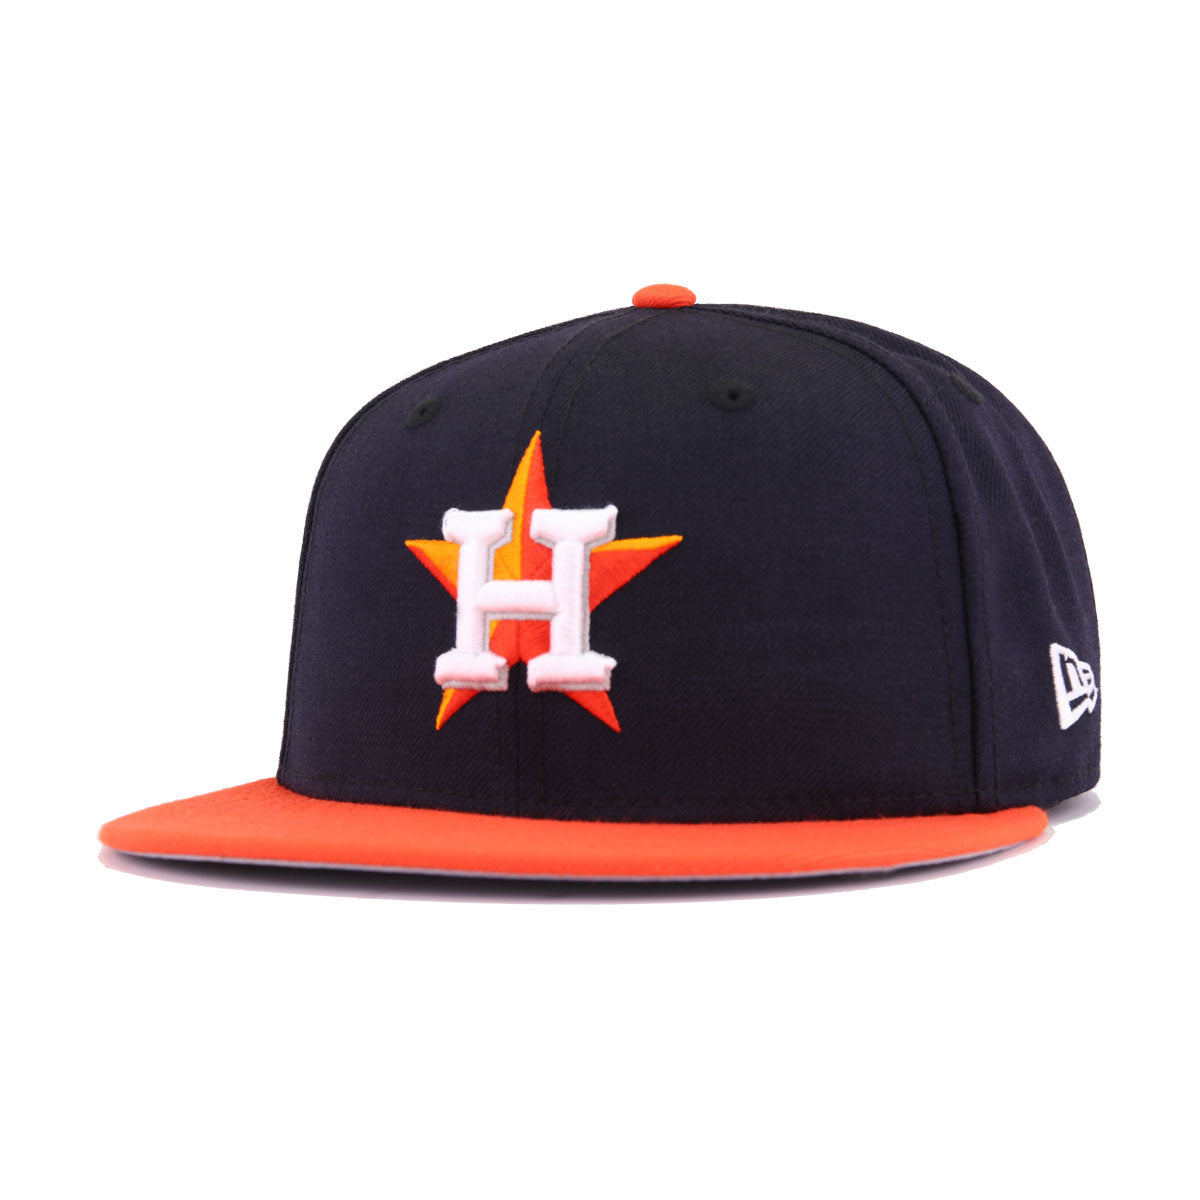 Houston Astros Navy Orangeade 2017 World Series New Era 59Fifty Fitted